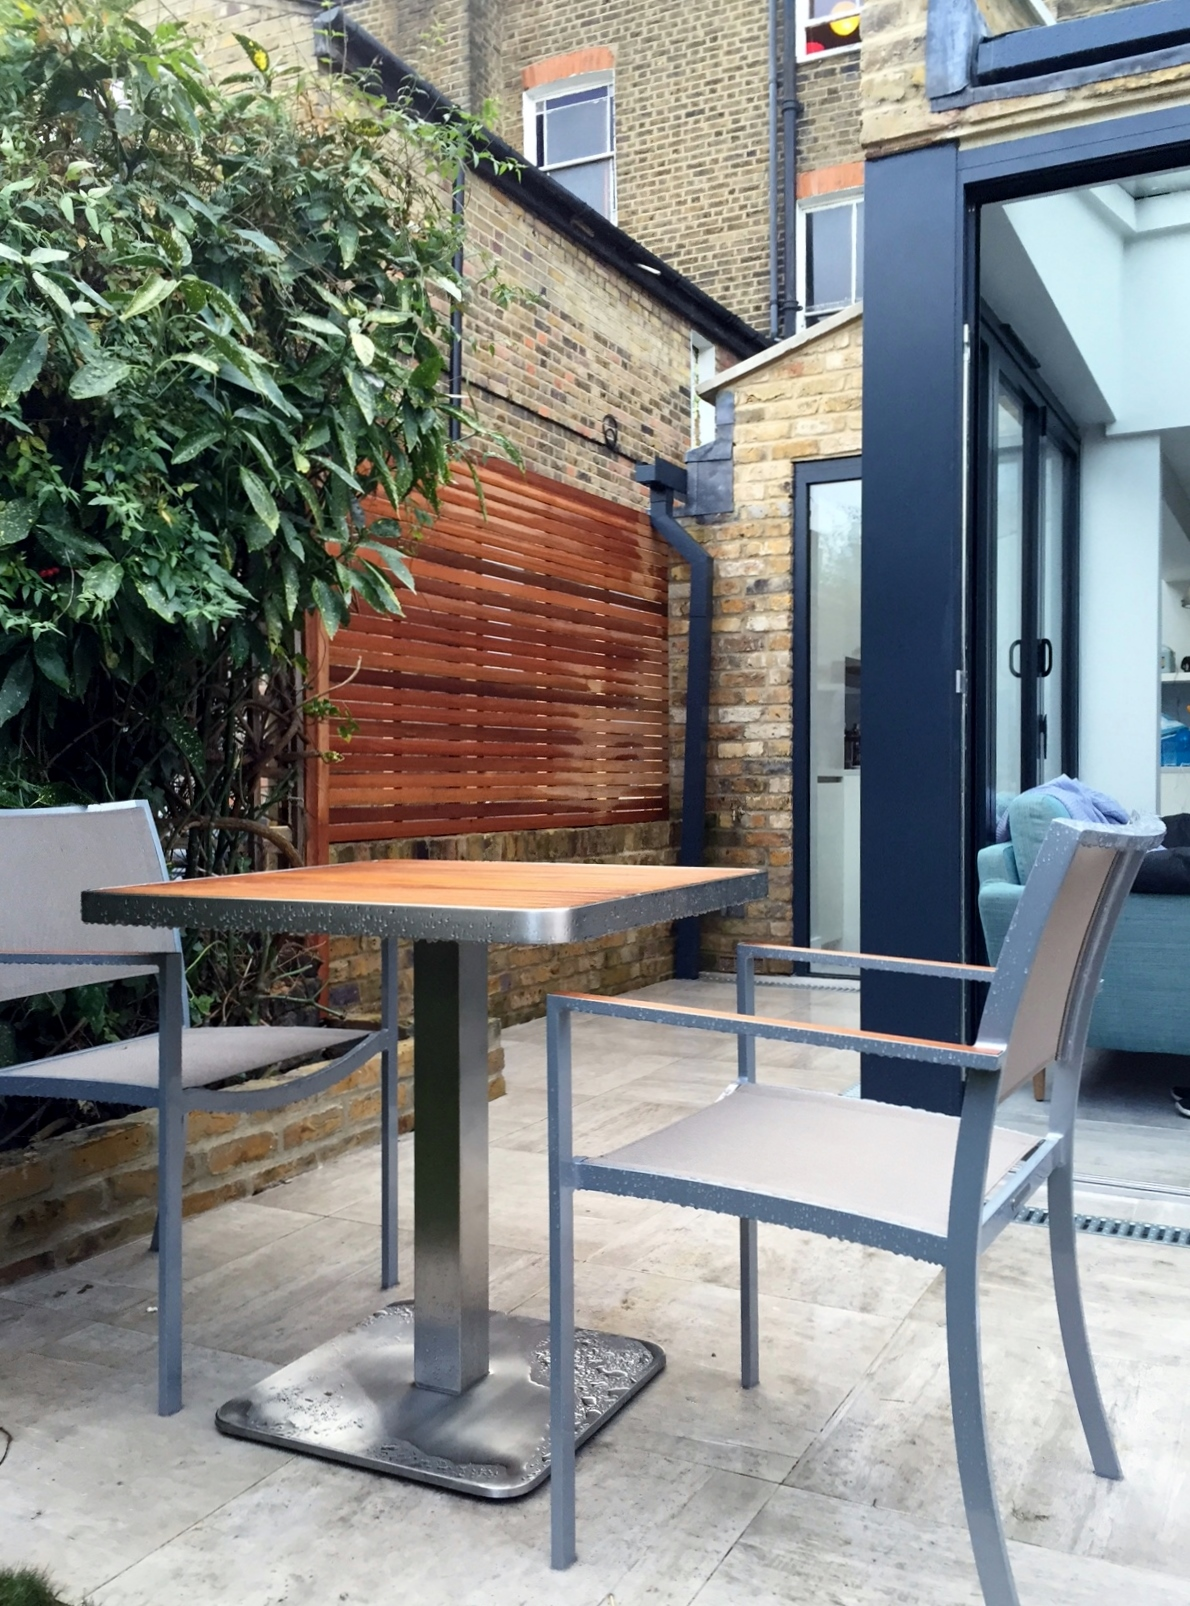 patio trellis screen hardwood fence brixton london